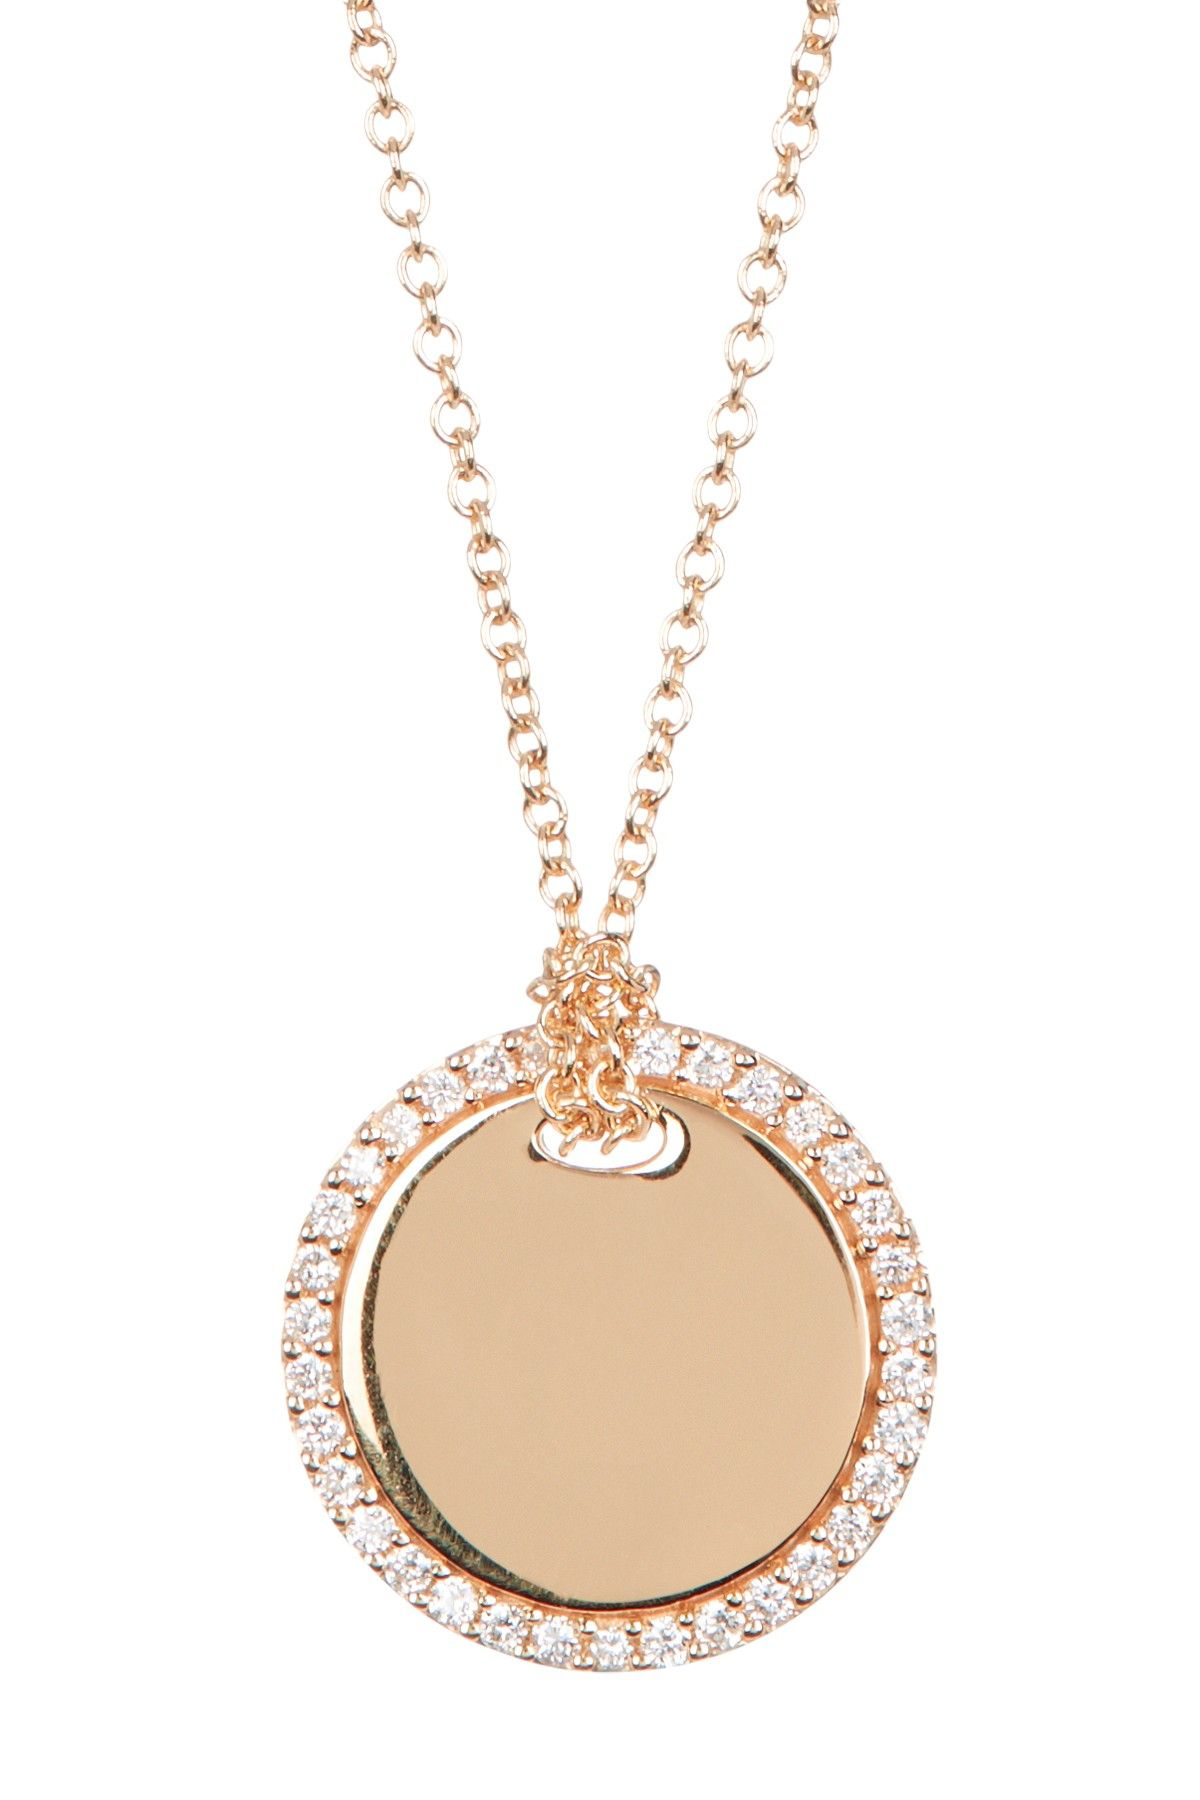 18k rose gold pave diamond circle pendant necklace 013 ctw by 18k rose gold pave diamond circle pendant necklace 013 ctw by bony levy on aloadofball Images